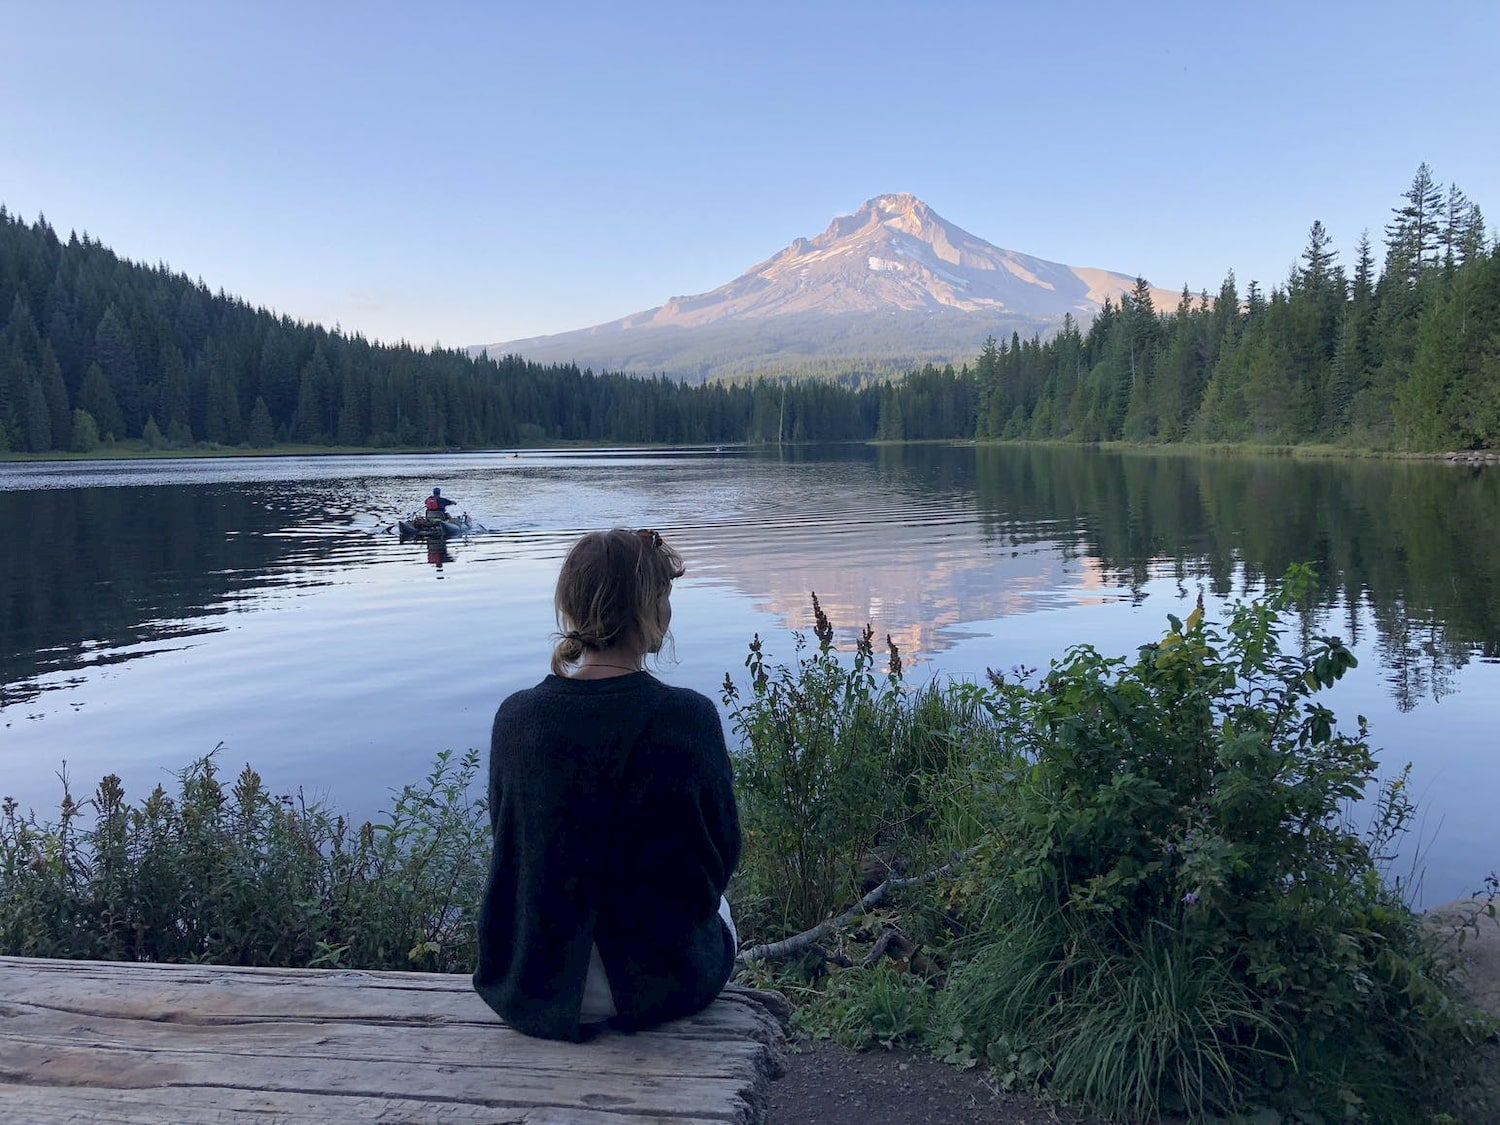 woman sitting on dock looking at mount hood